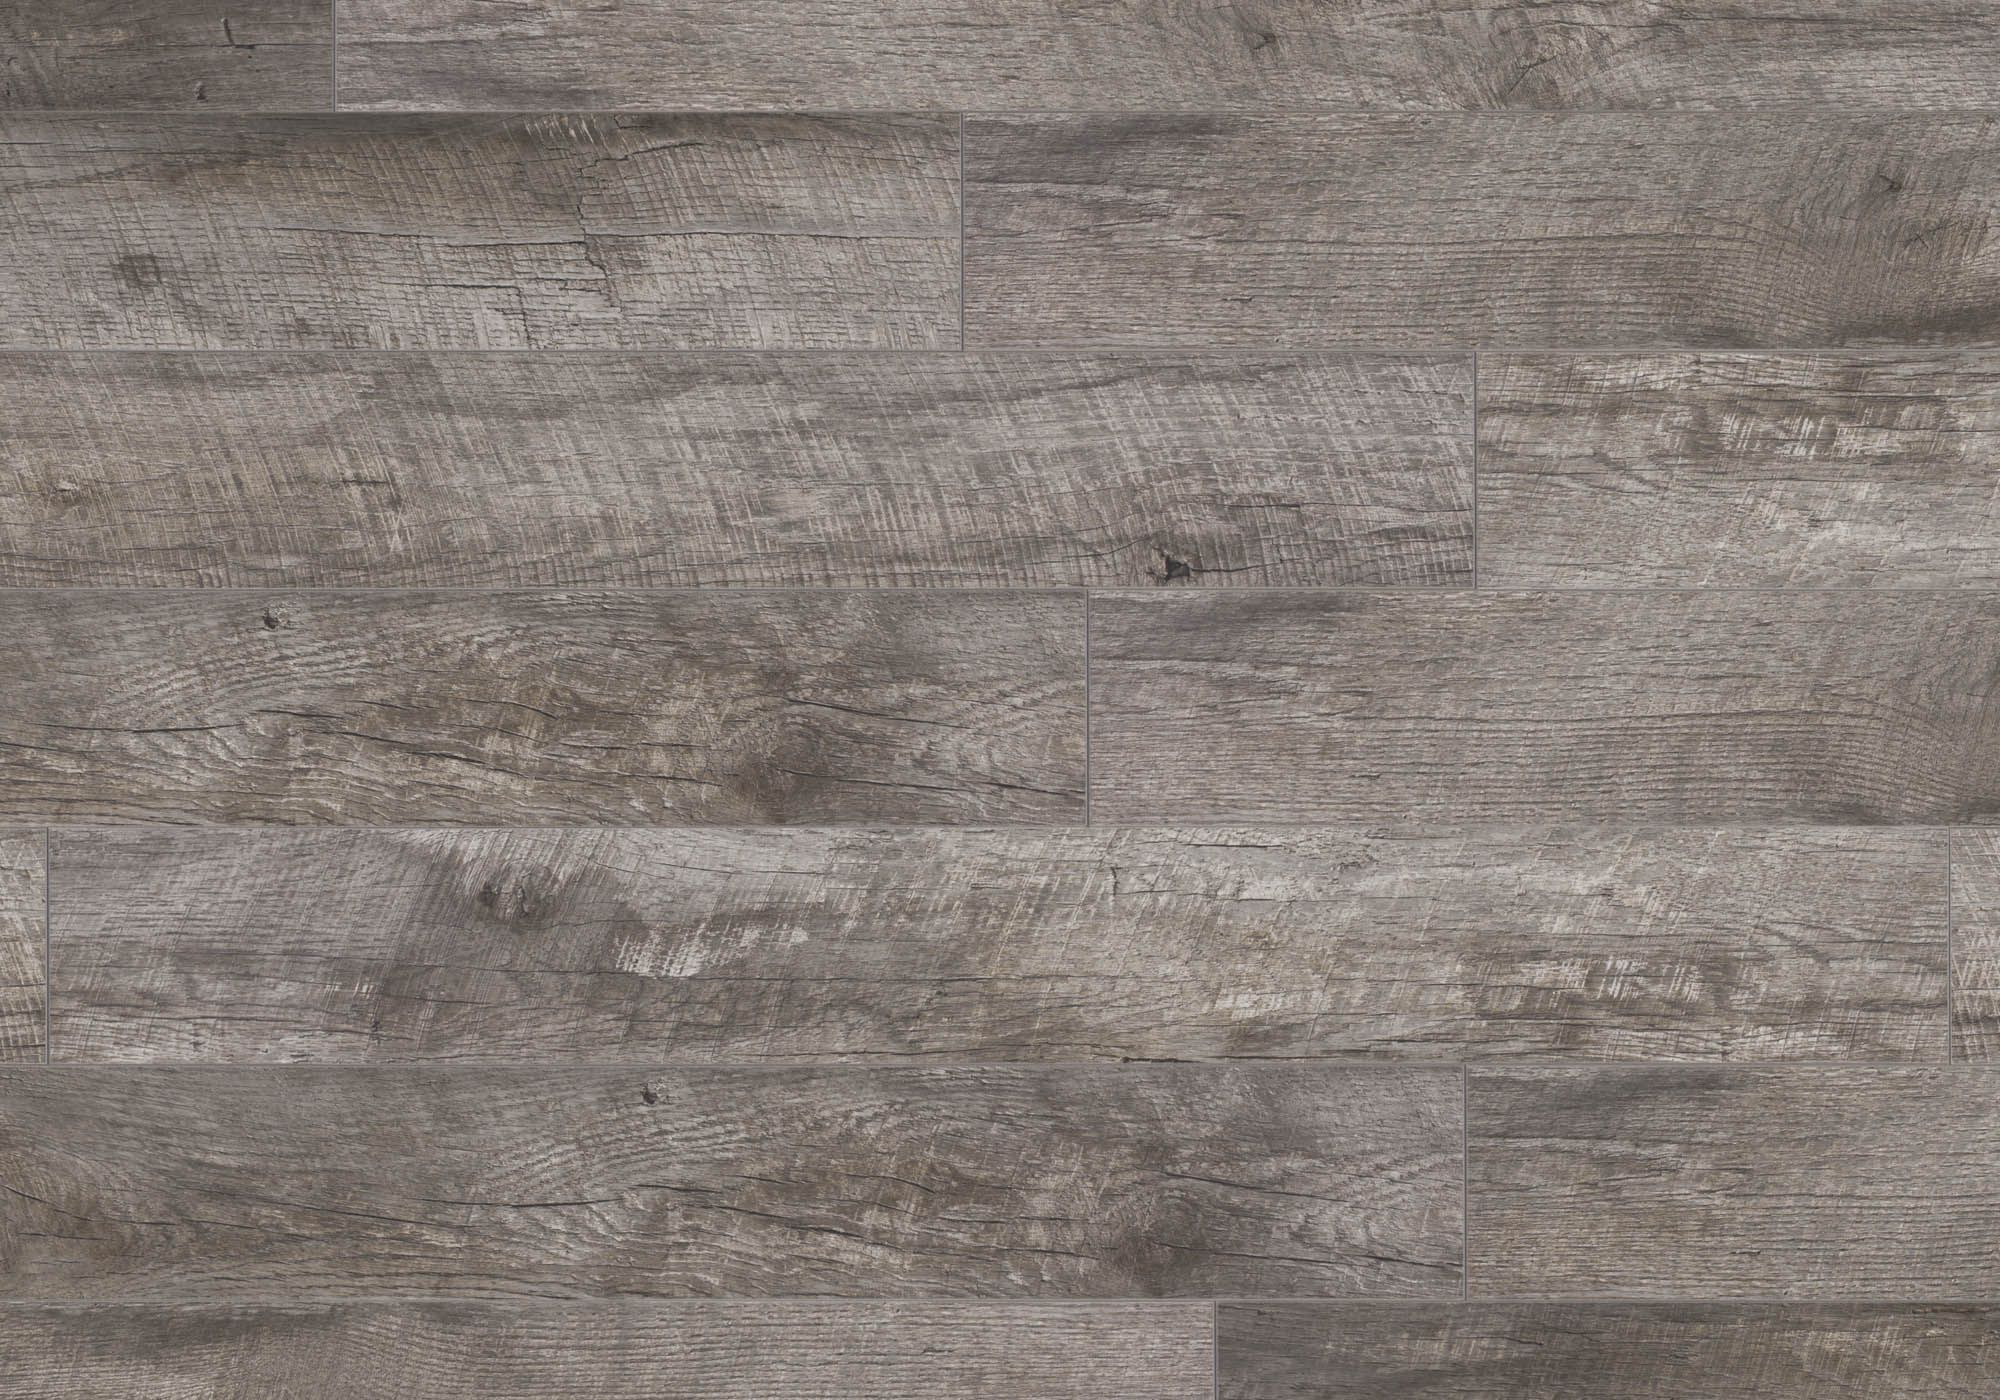 Stanley Natural Vintagecollection 41032 Part Of The Natural Vintage Collection Stanley Is A Rustic Greige Floor For The Flooring Wood Laminate Vinyl Flooring